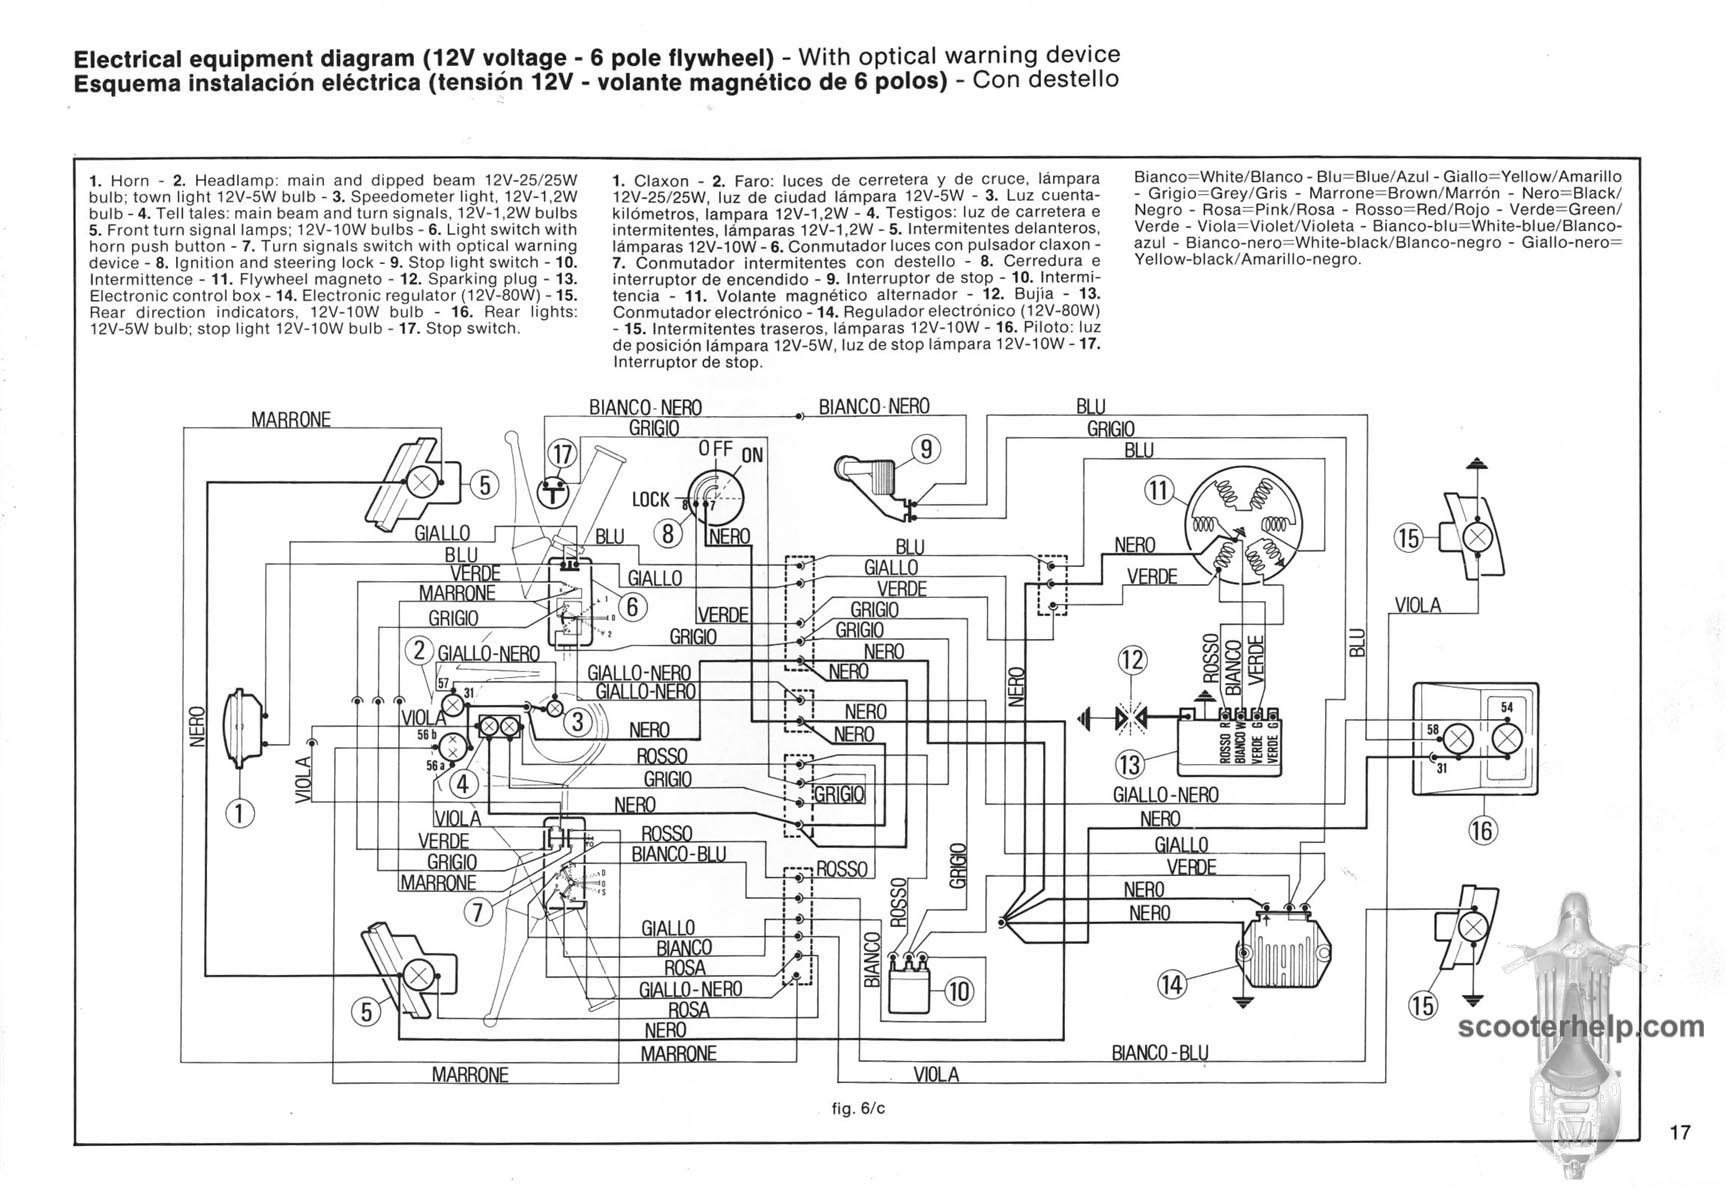 17 pk factory repair manual vespa p125x wiring diagram at aneh.co